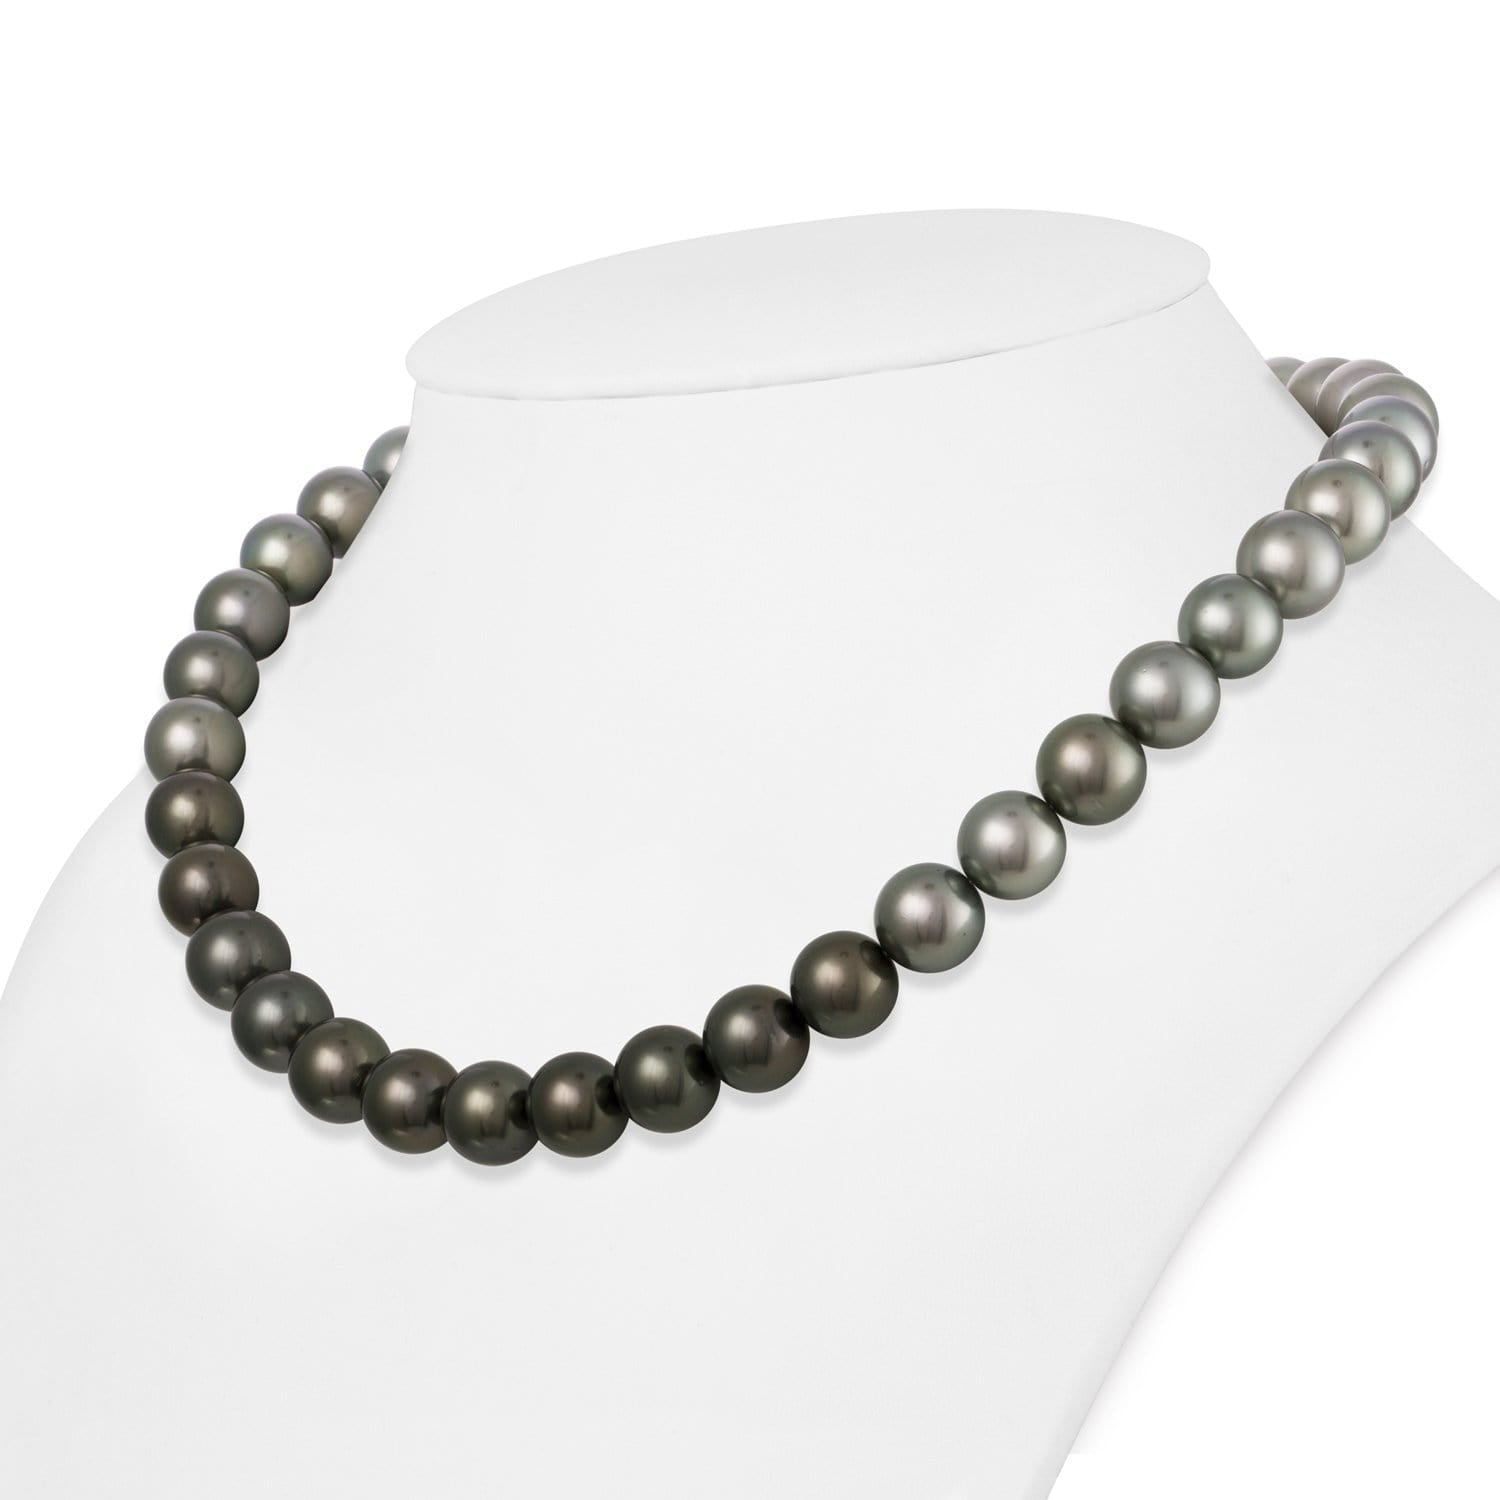 HUGE 10-11mm super luster SOUTH SEA BAR PEOQUE GREY PEARL NECKLACE 18inch